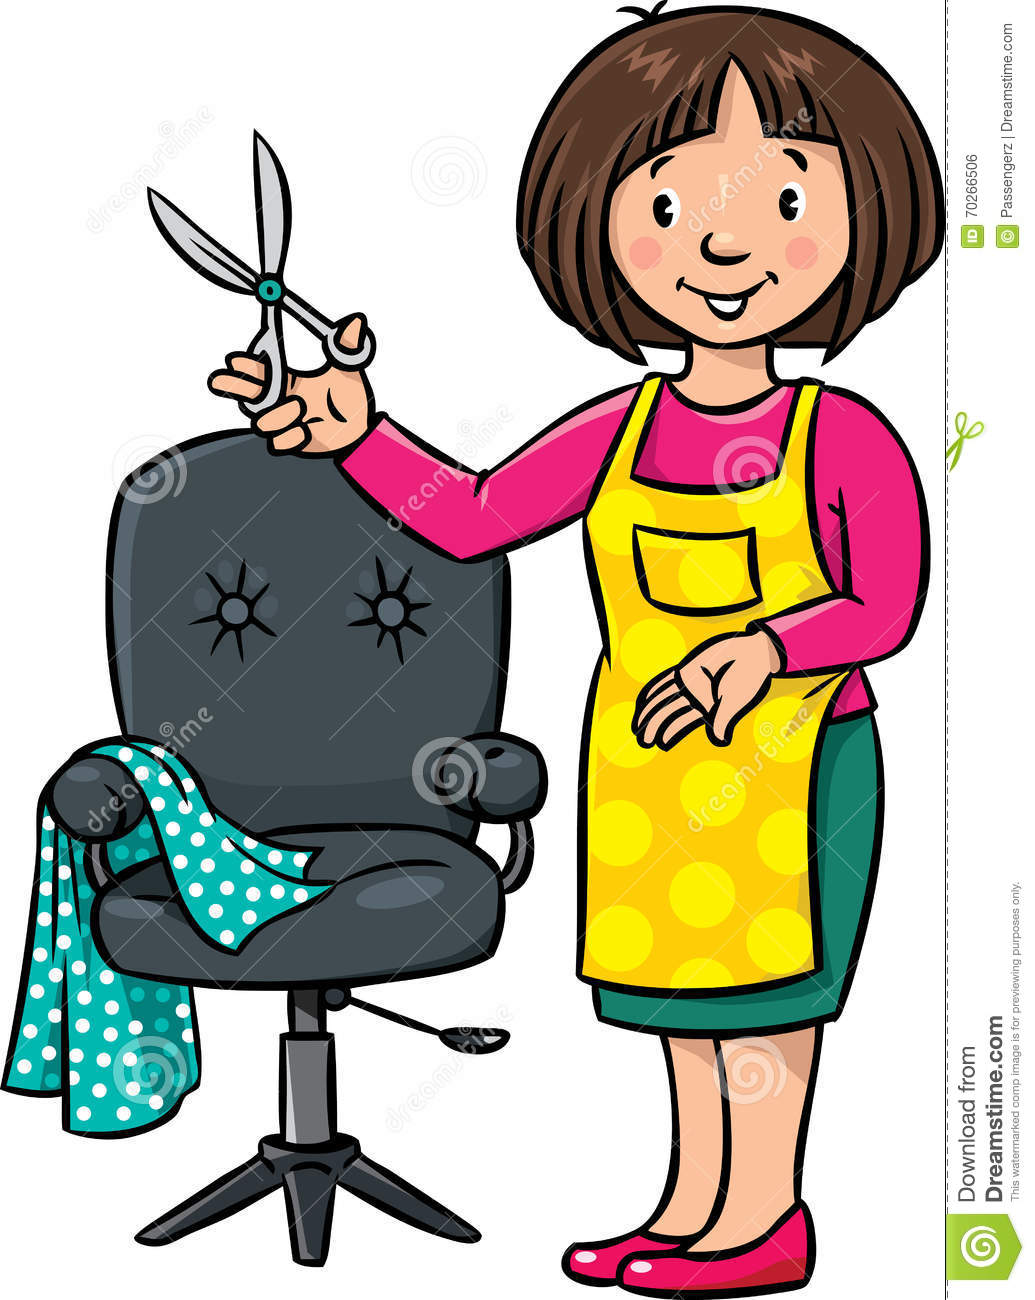 funny hairdresser or barber profession abc series stock scissors clip art images scissors clipart dog